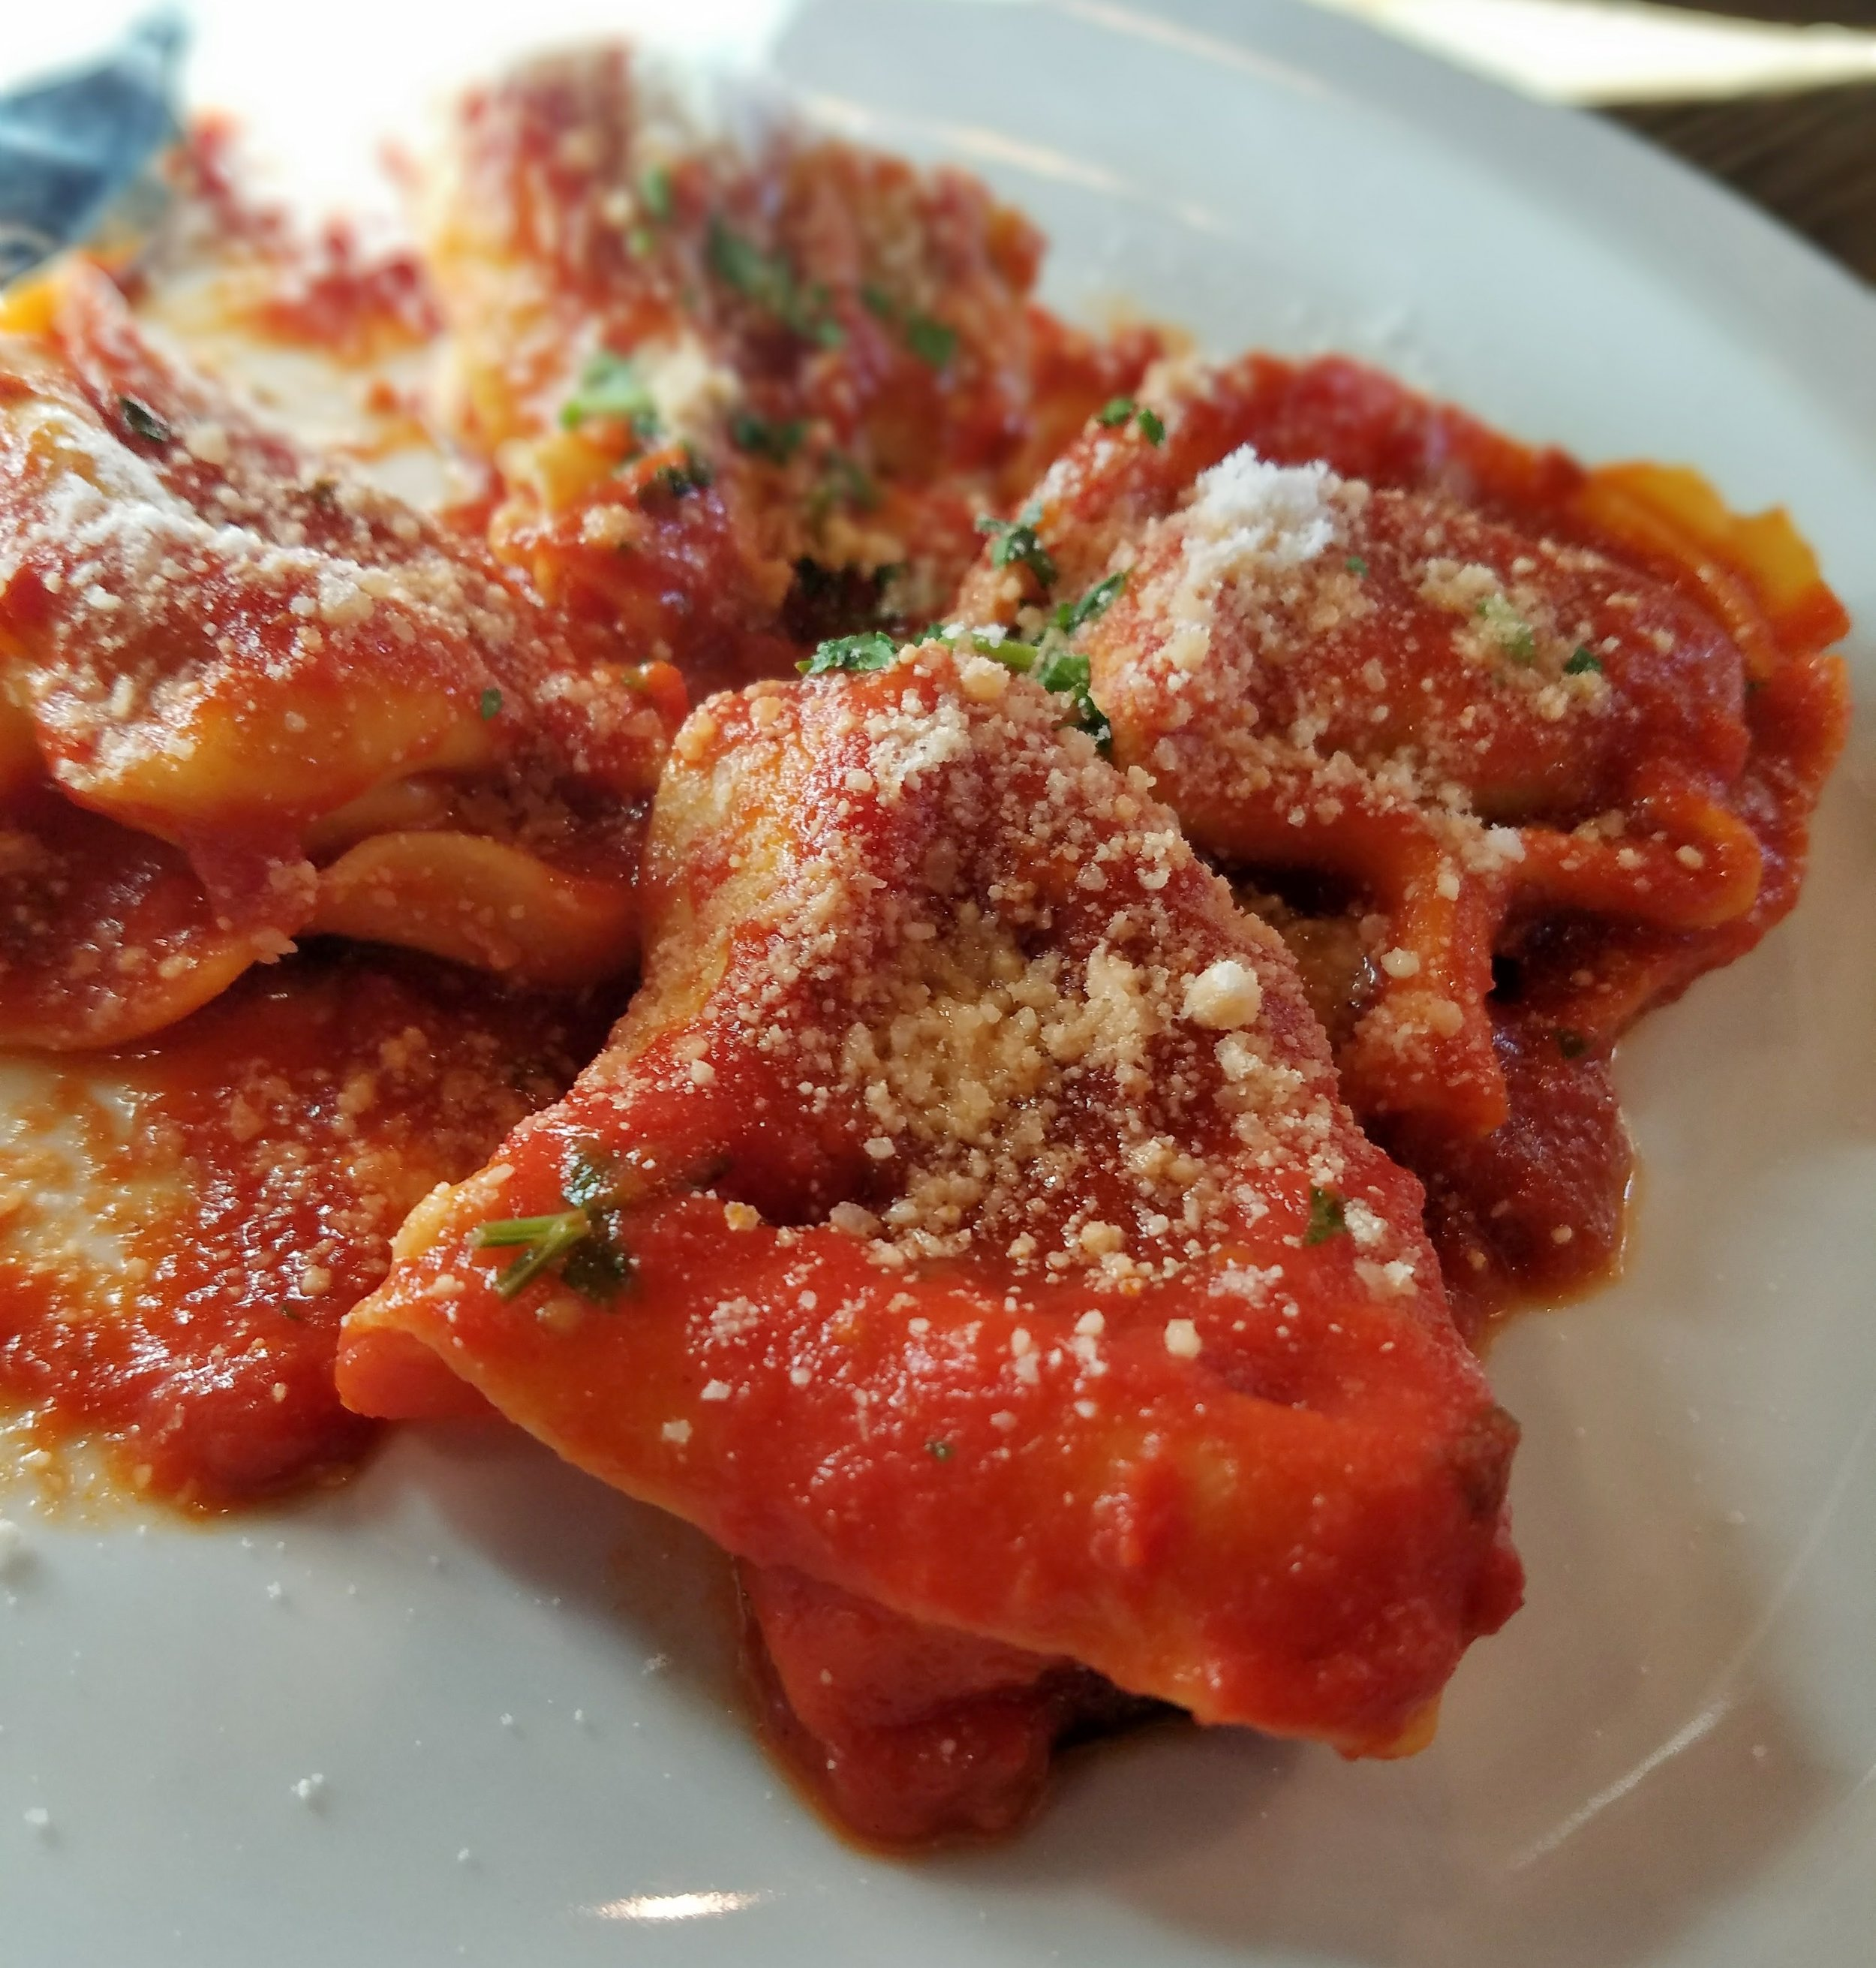 Veal and beef ravioli with marinara (a special)